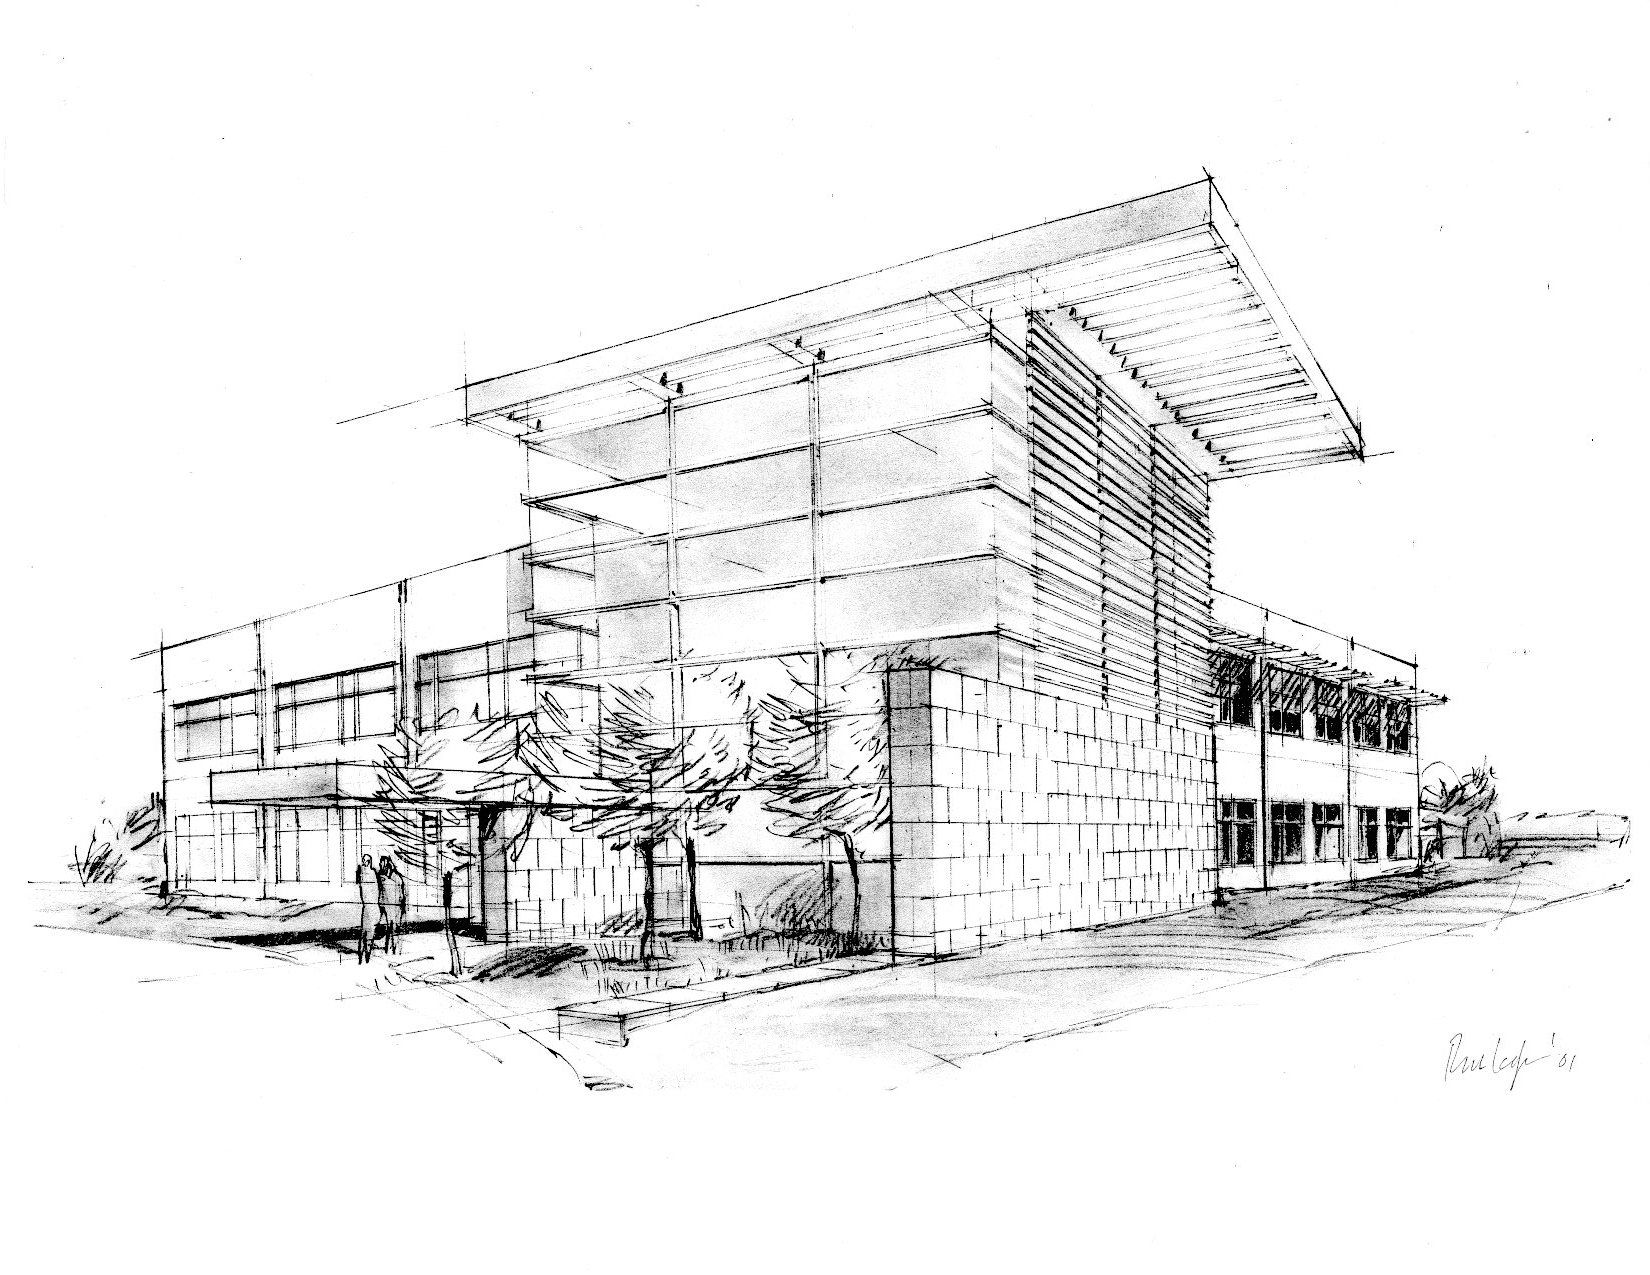 Beautiful Building Design Sketches With Pencil Sketch Of